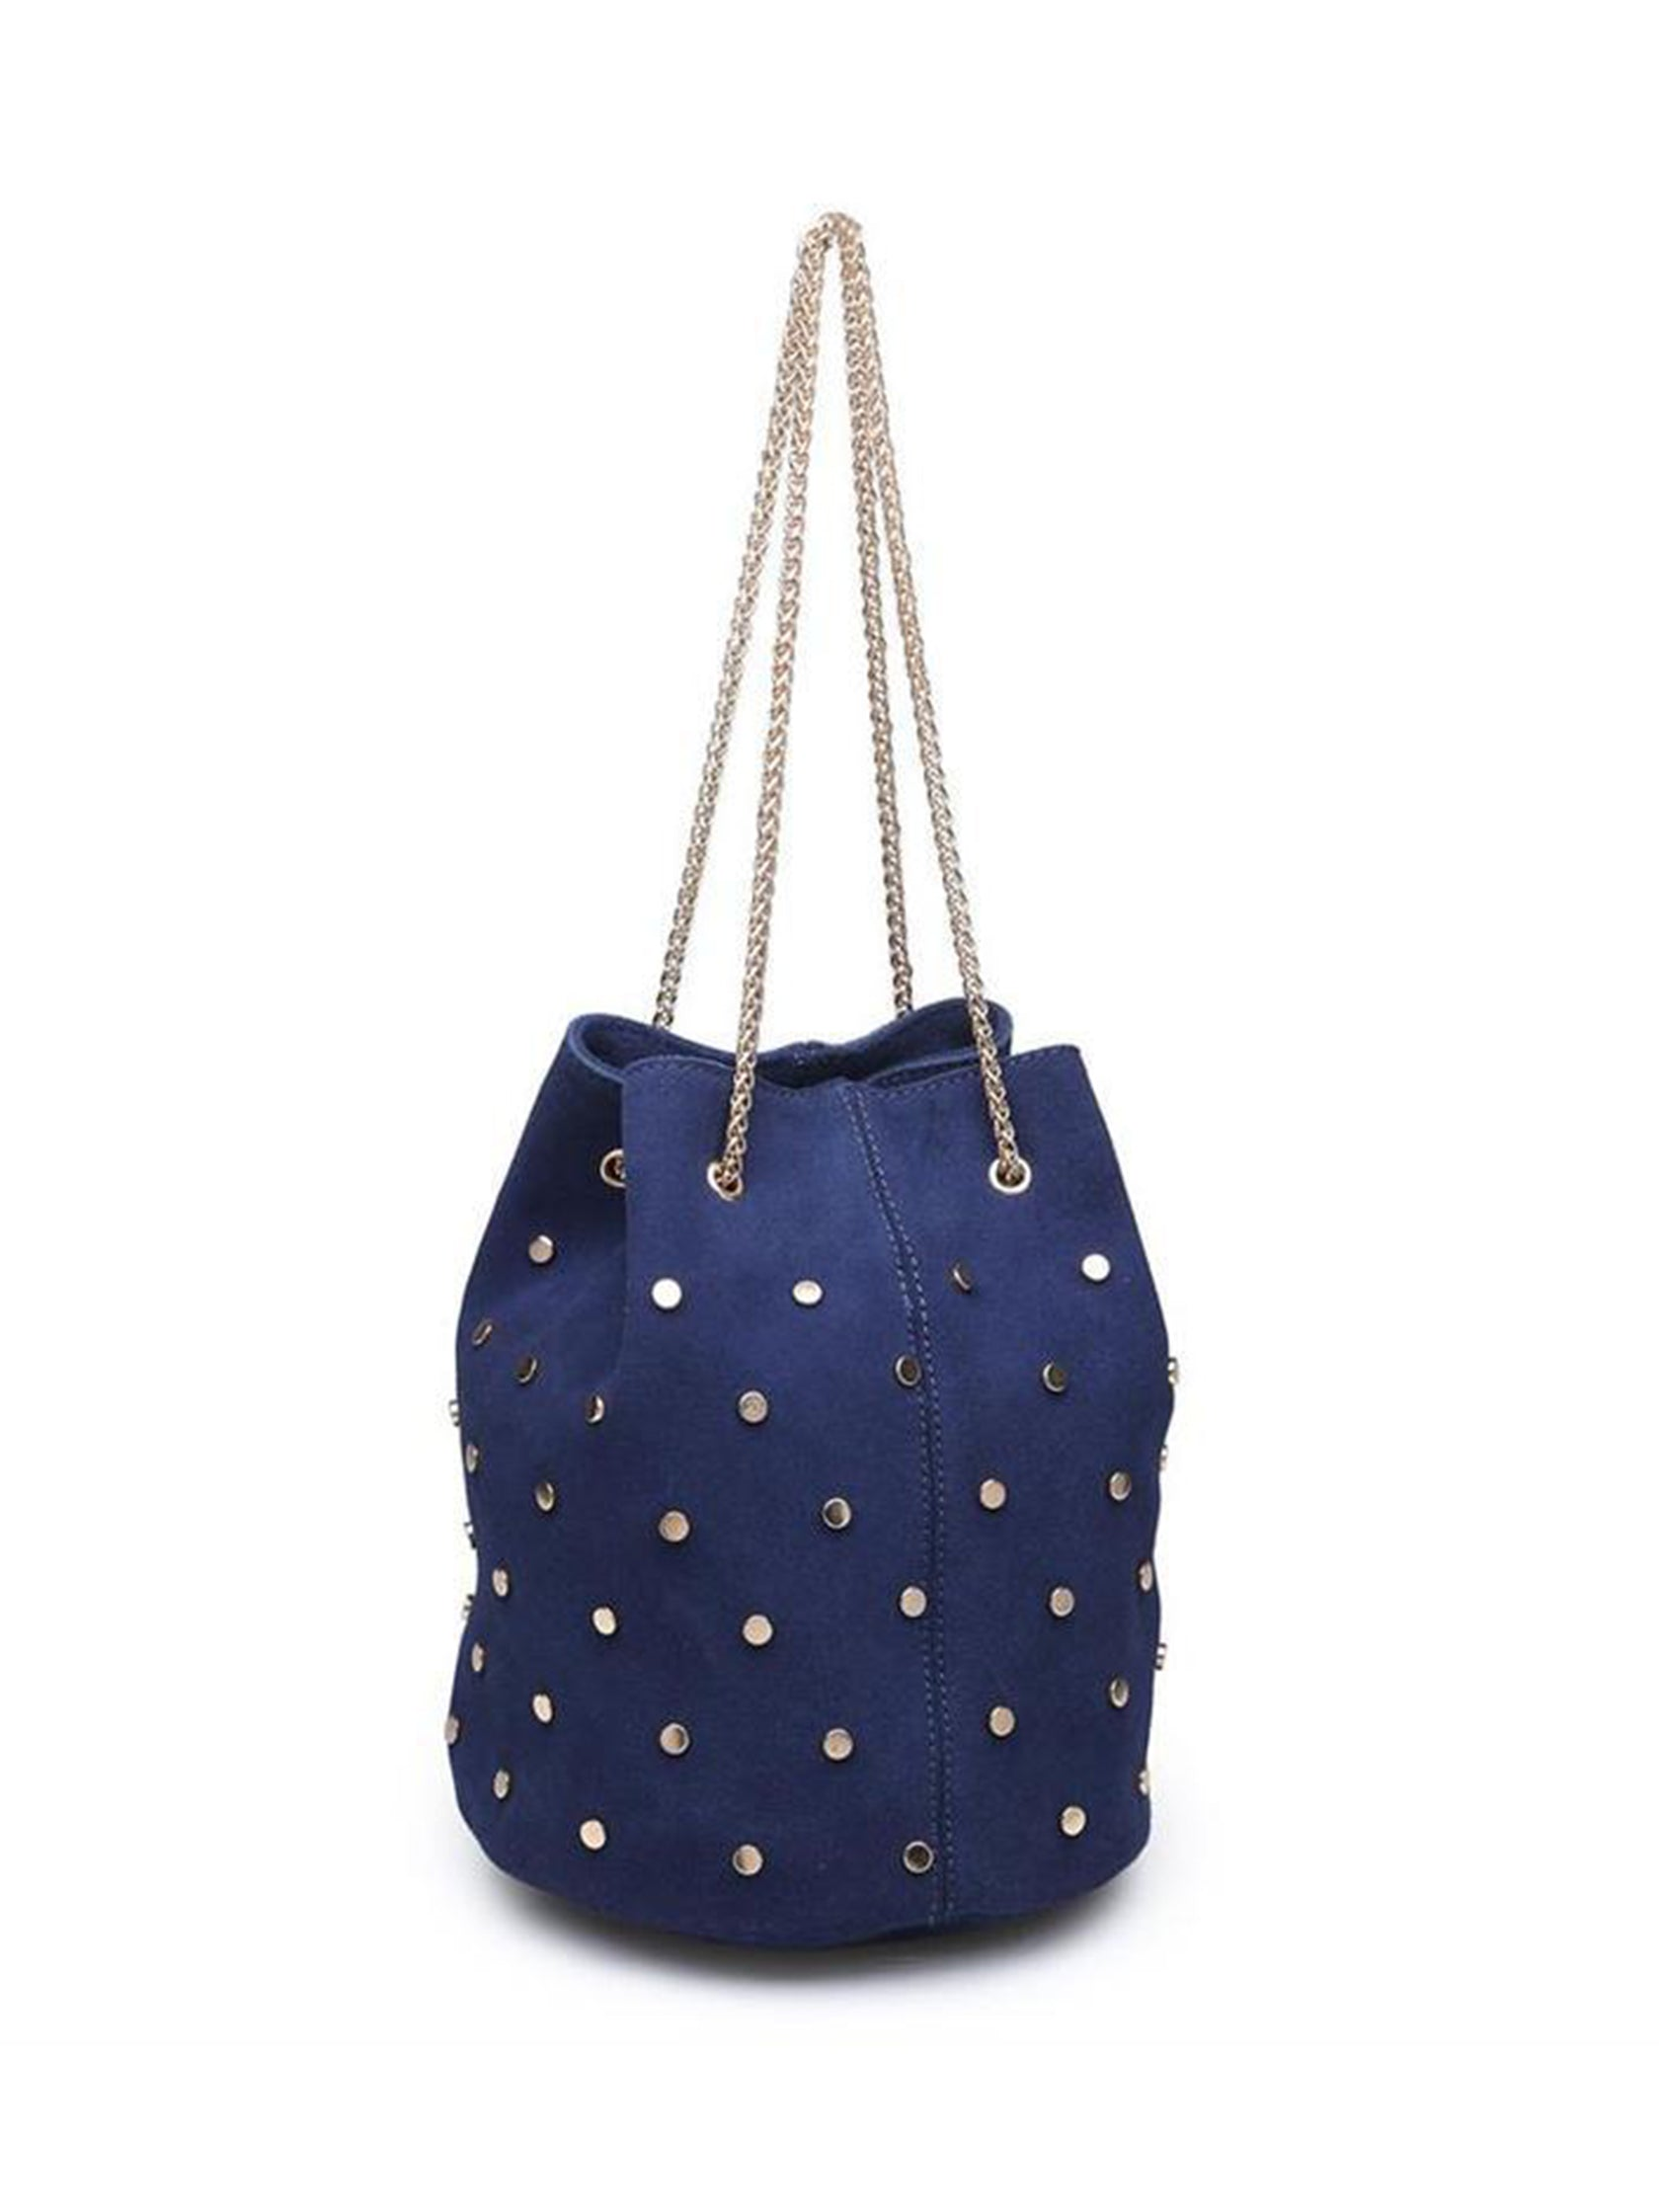 Women outfit in a purse rental from FashionPass called Colette Bucket Bag